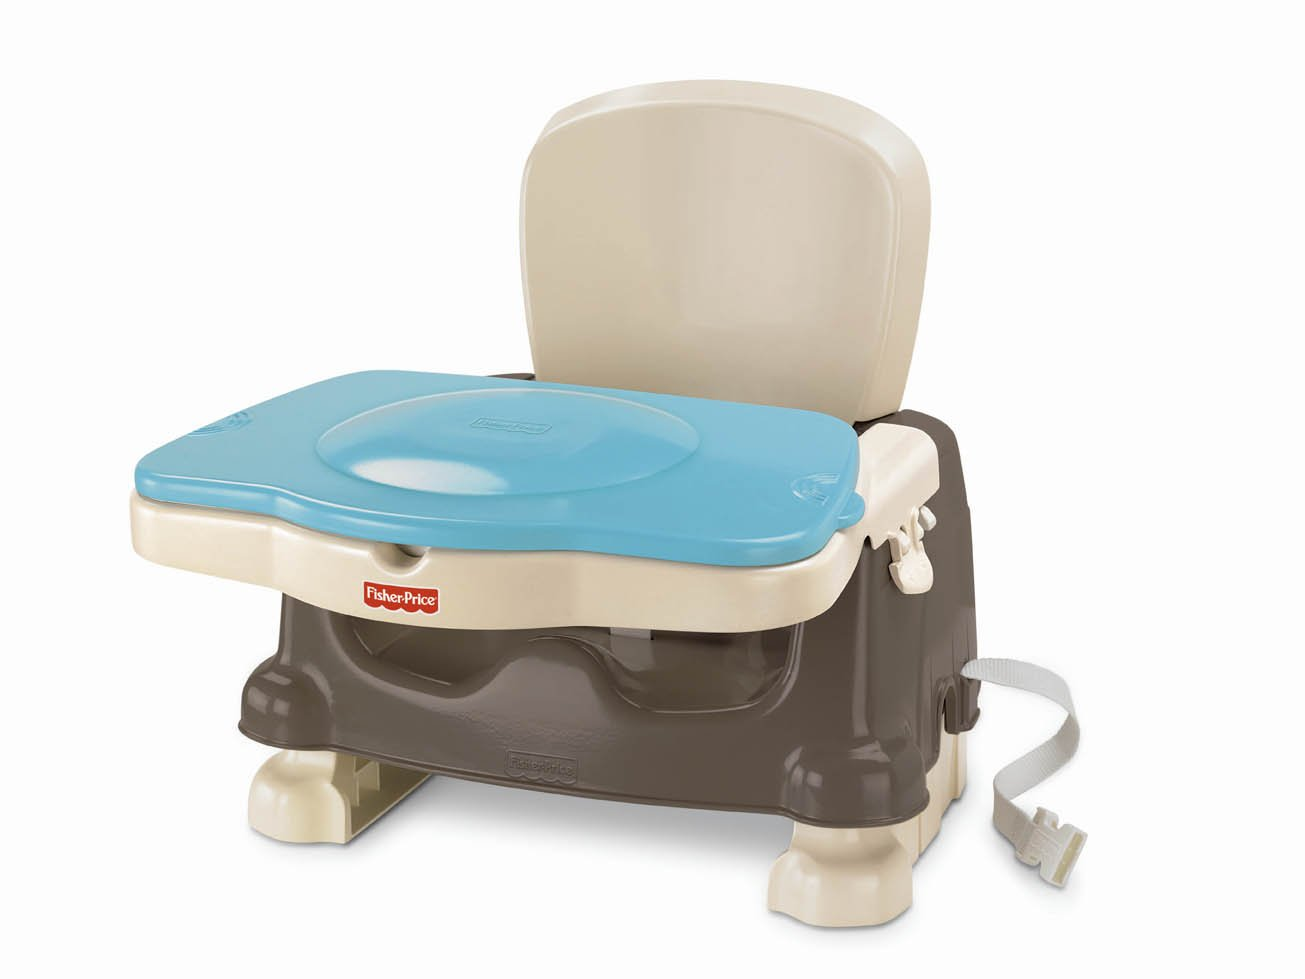 fisher price healthy care deluxe booster seat brown tan. Black Bedroom Furniture Sets. Home Design Ideas